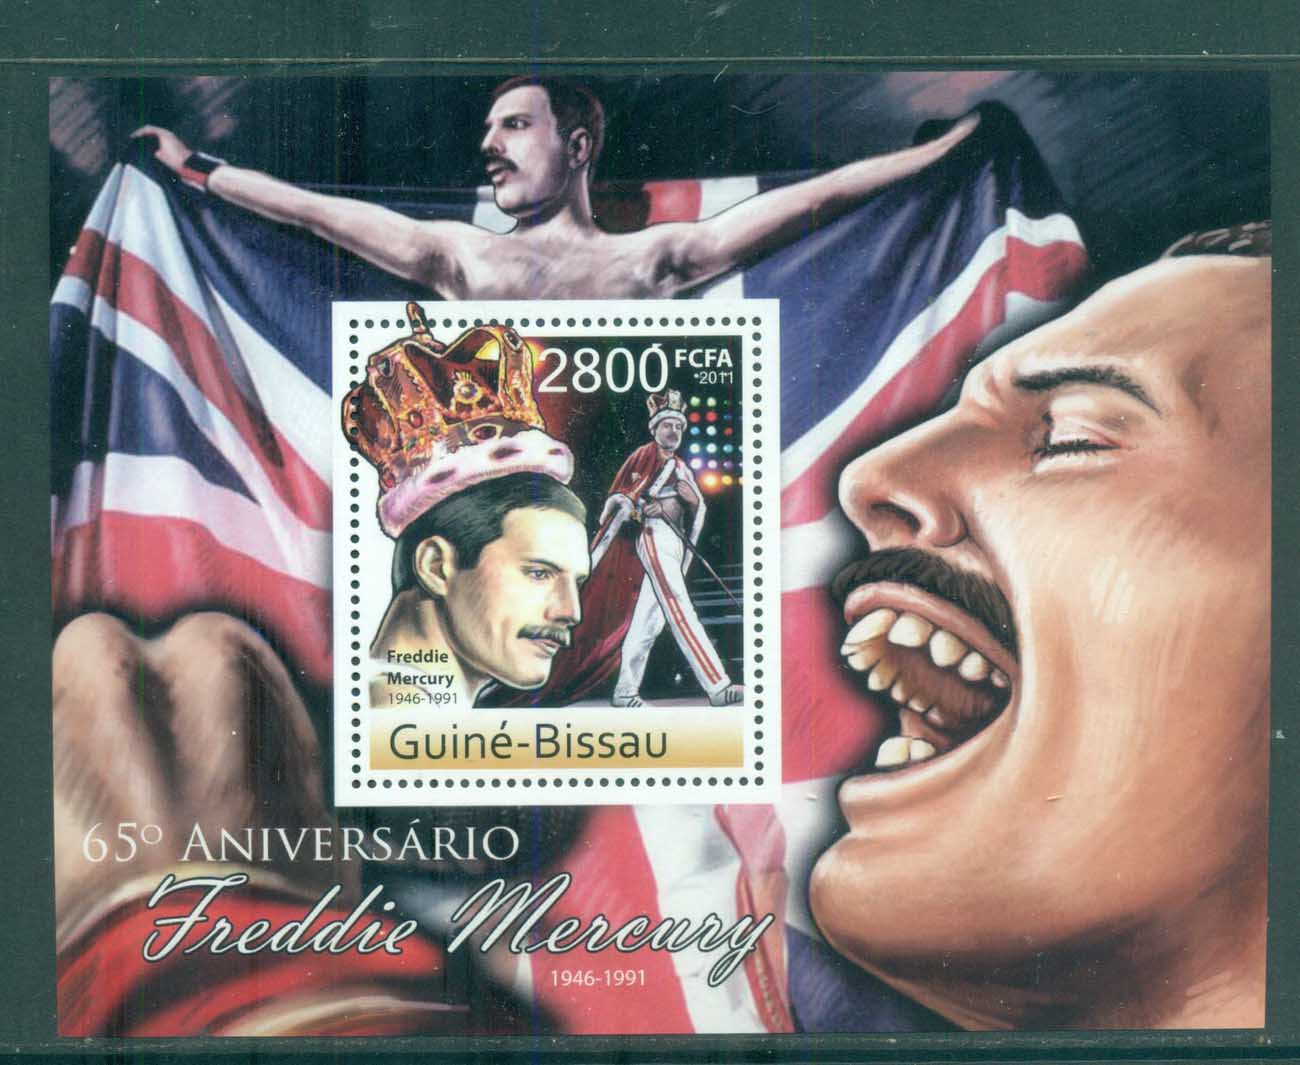 Guinea Bissau 2011 Famous People, Music, Male, Freddie Mercury MS MUH GB030